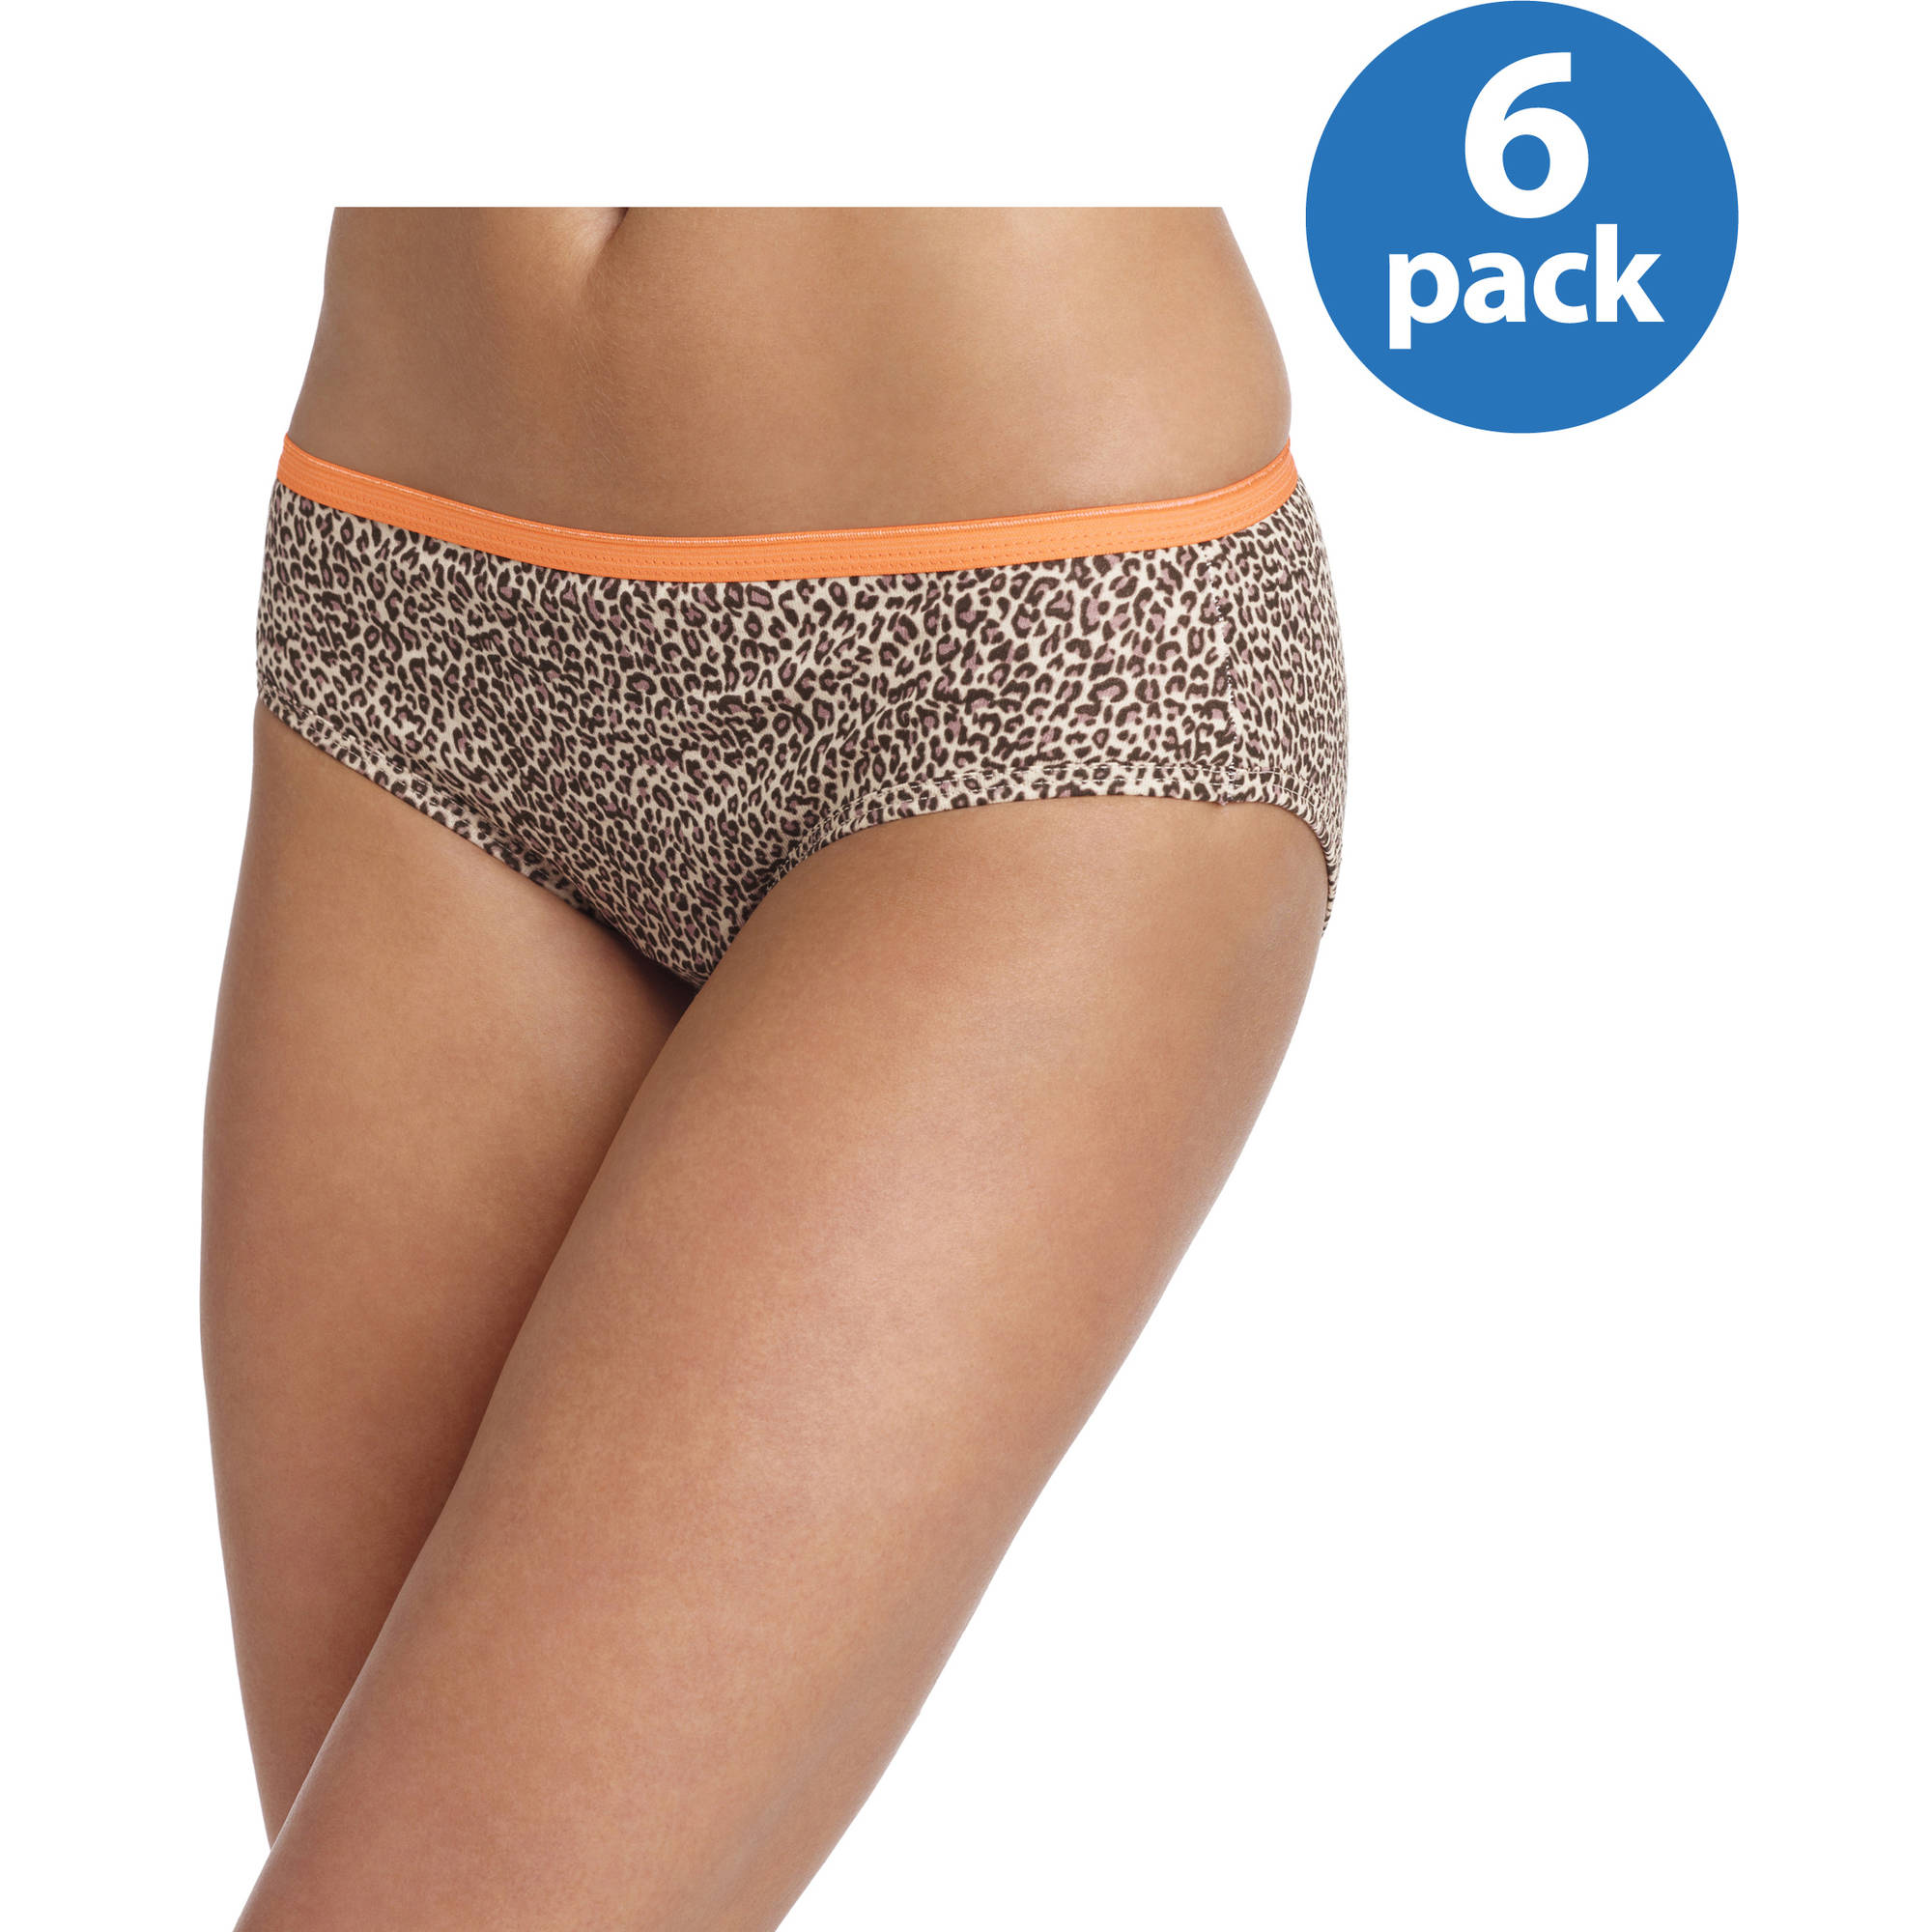 Hanes Women's Cotton Hipster Panties, 6-Pack